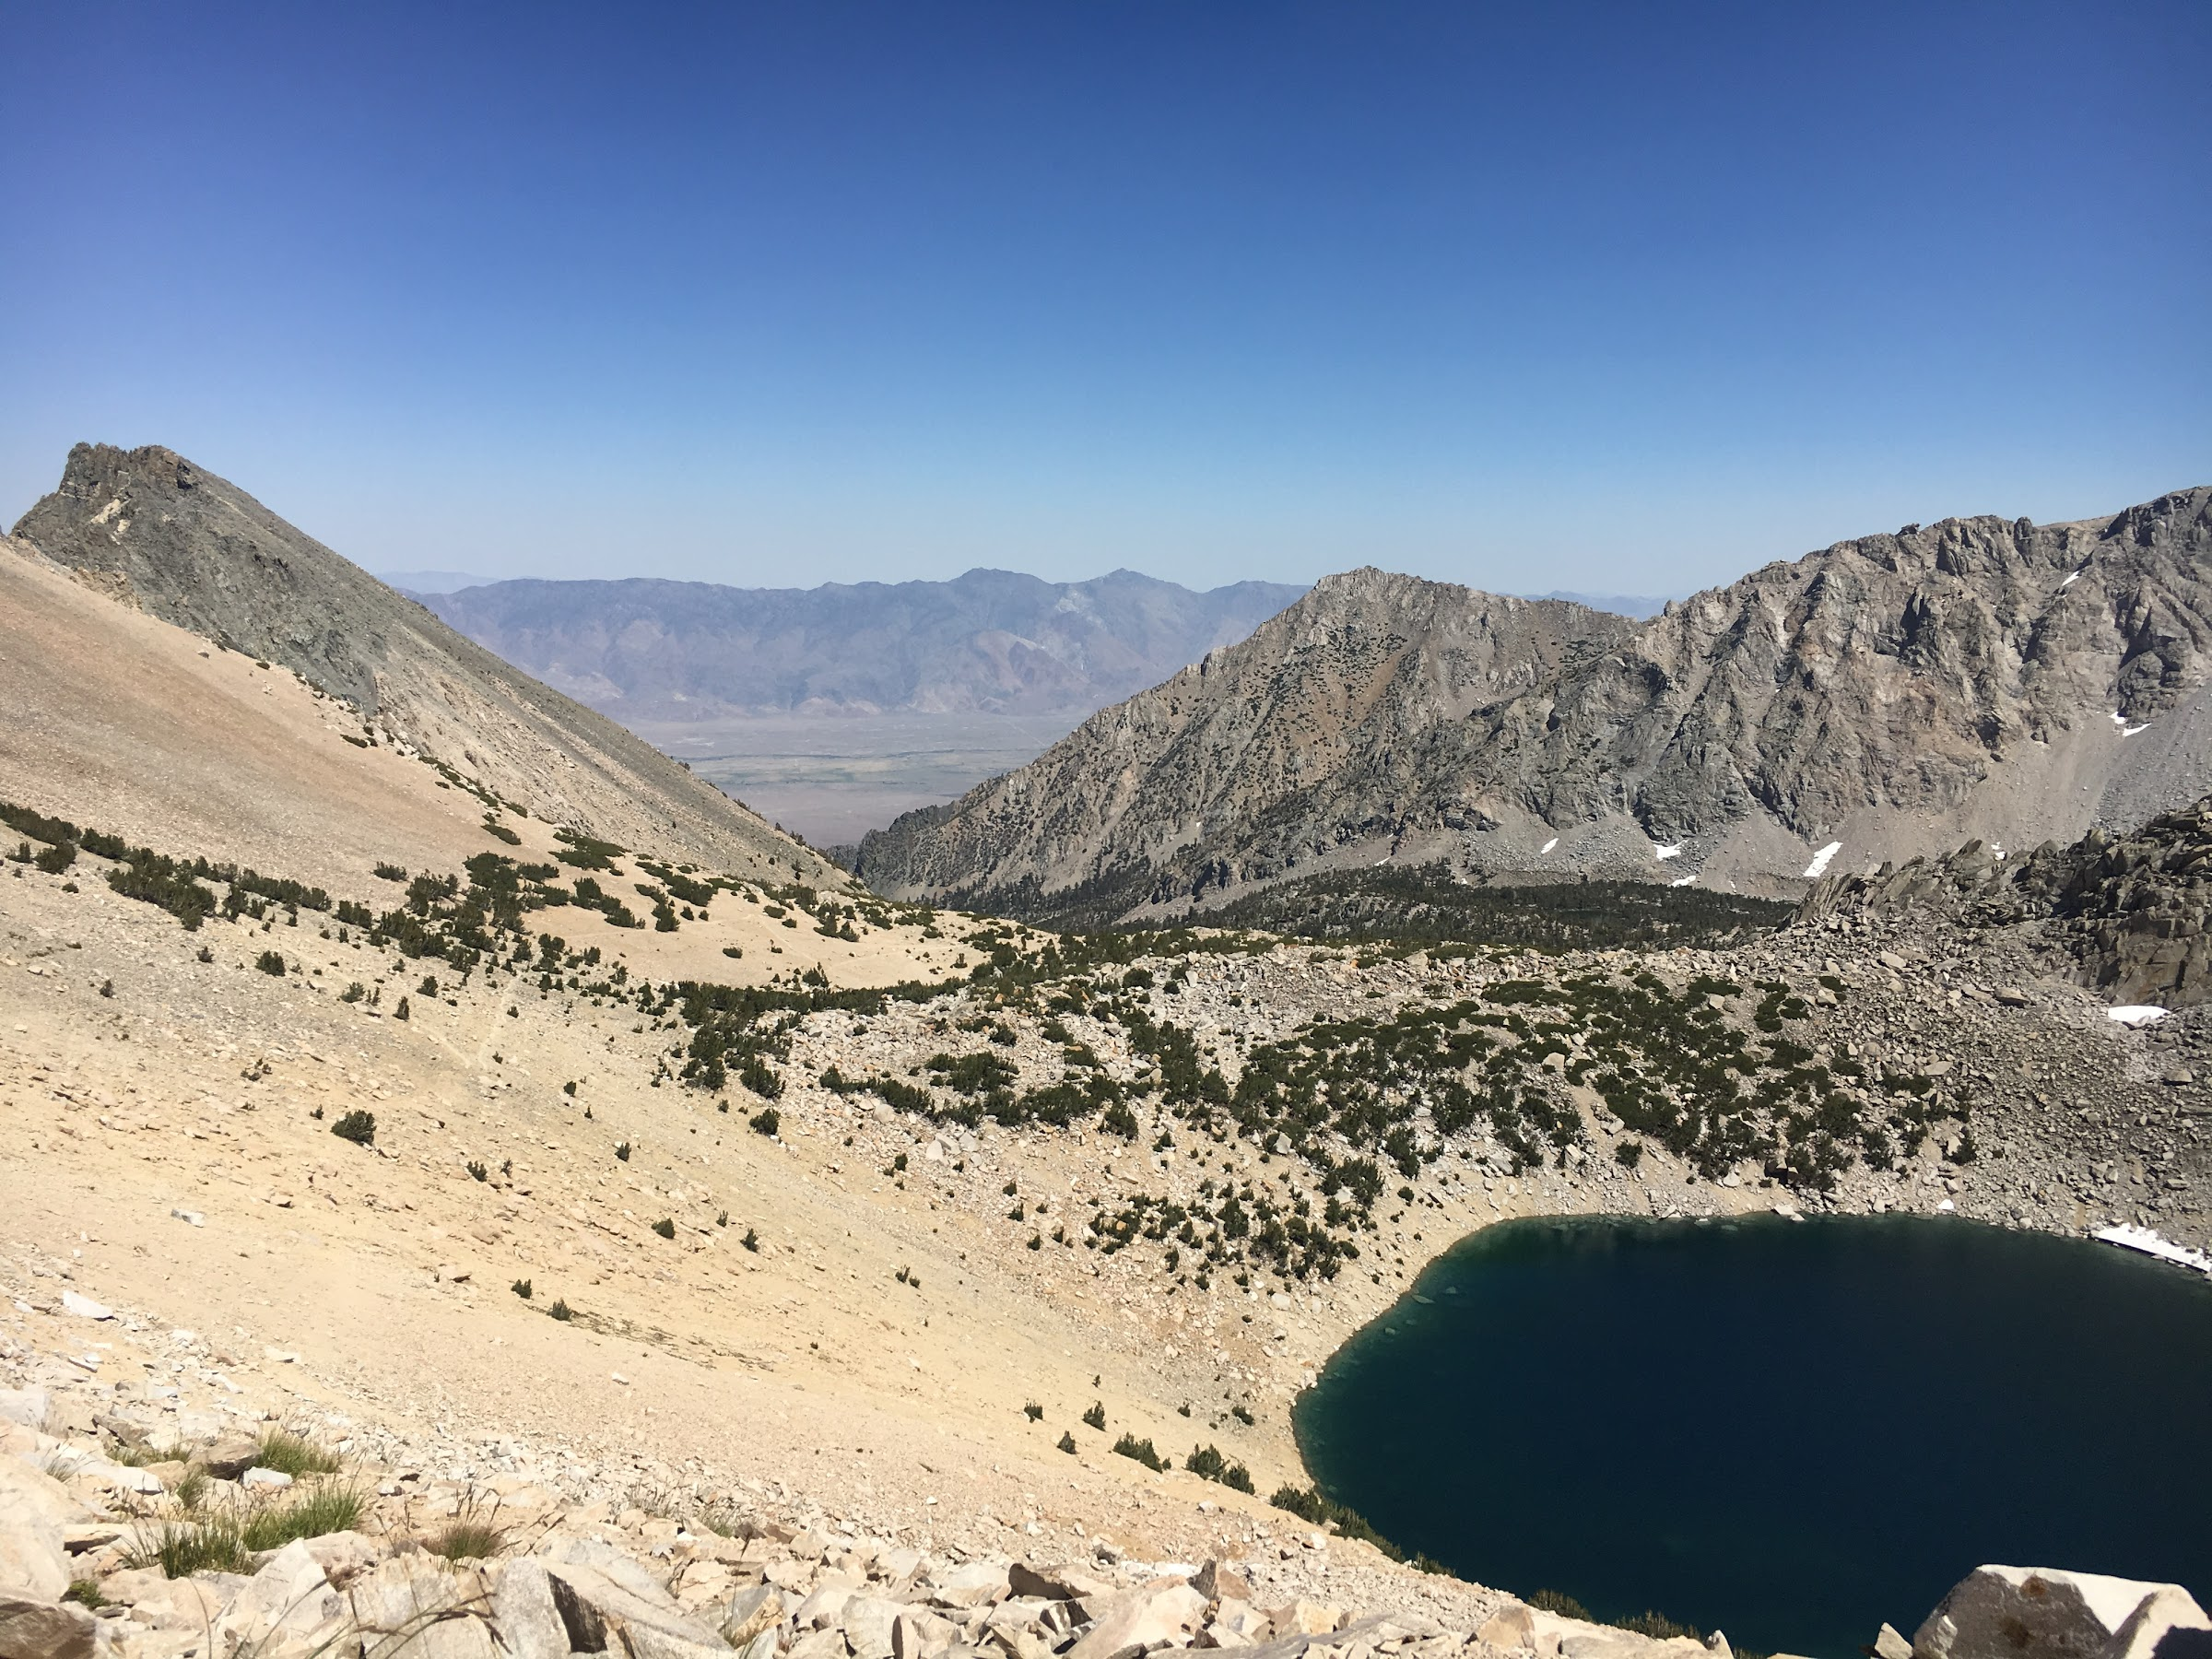 Headed back to civilization via Kearsarge Pass